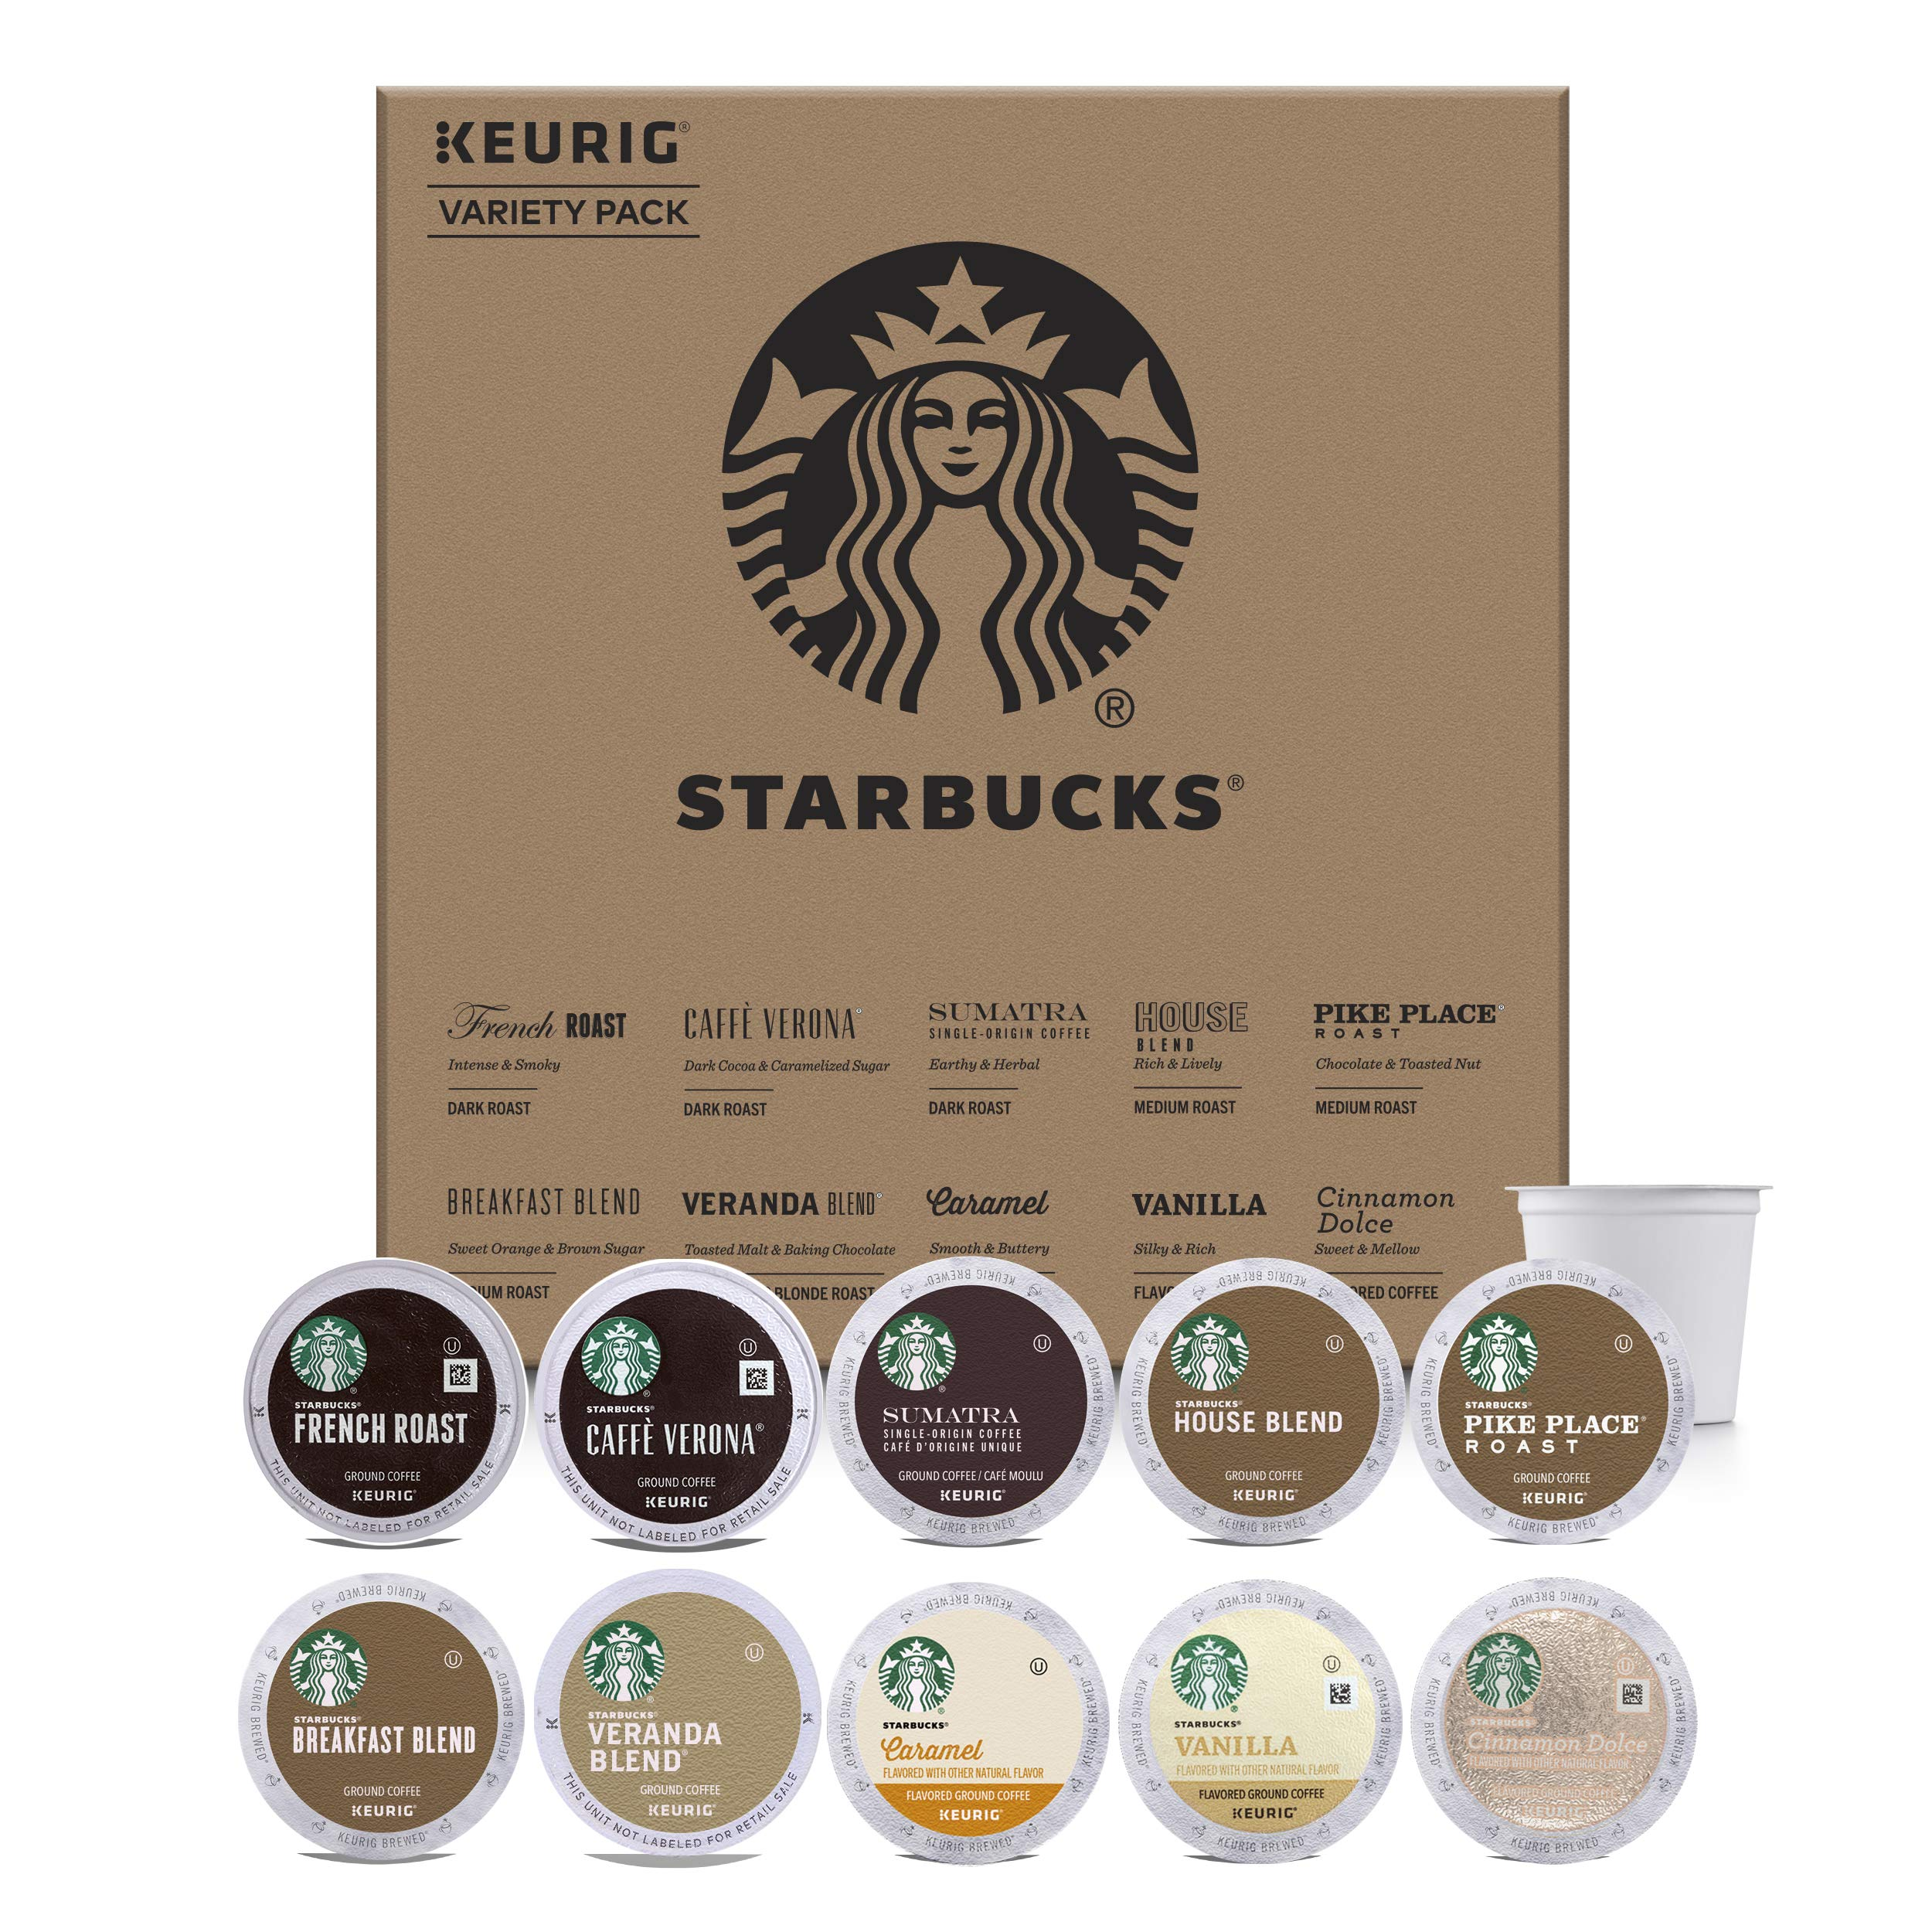 Starbucks Starter Kit K-Cup Variety Pack for Keurig Brewers, 40 K-Cup Pods (10 Roasts With 4 Pods Each) by Starbucks (Image #1)